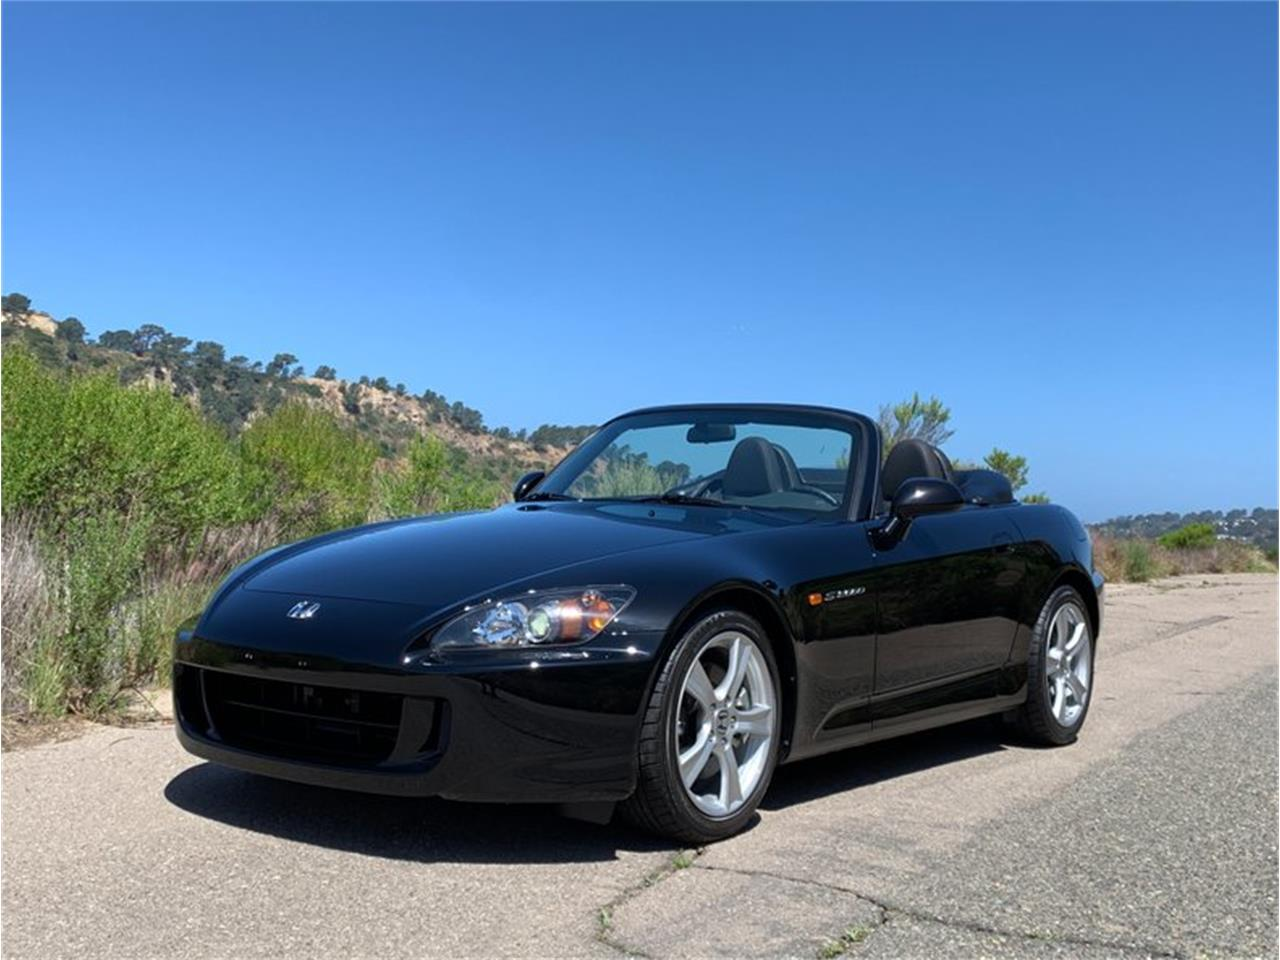 2009 Honda S2000 for sale in San Diego, CA – photo 3